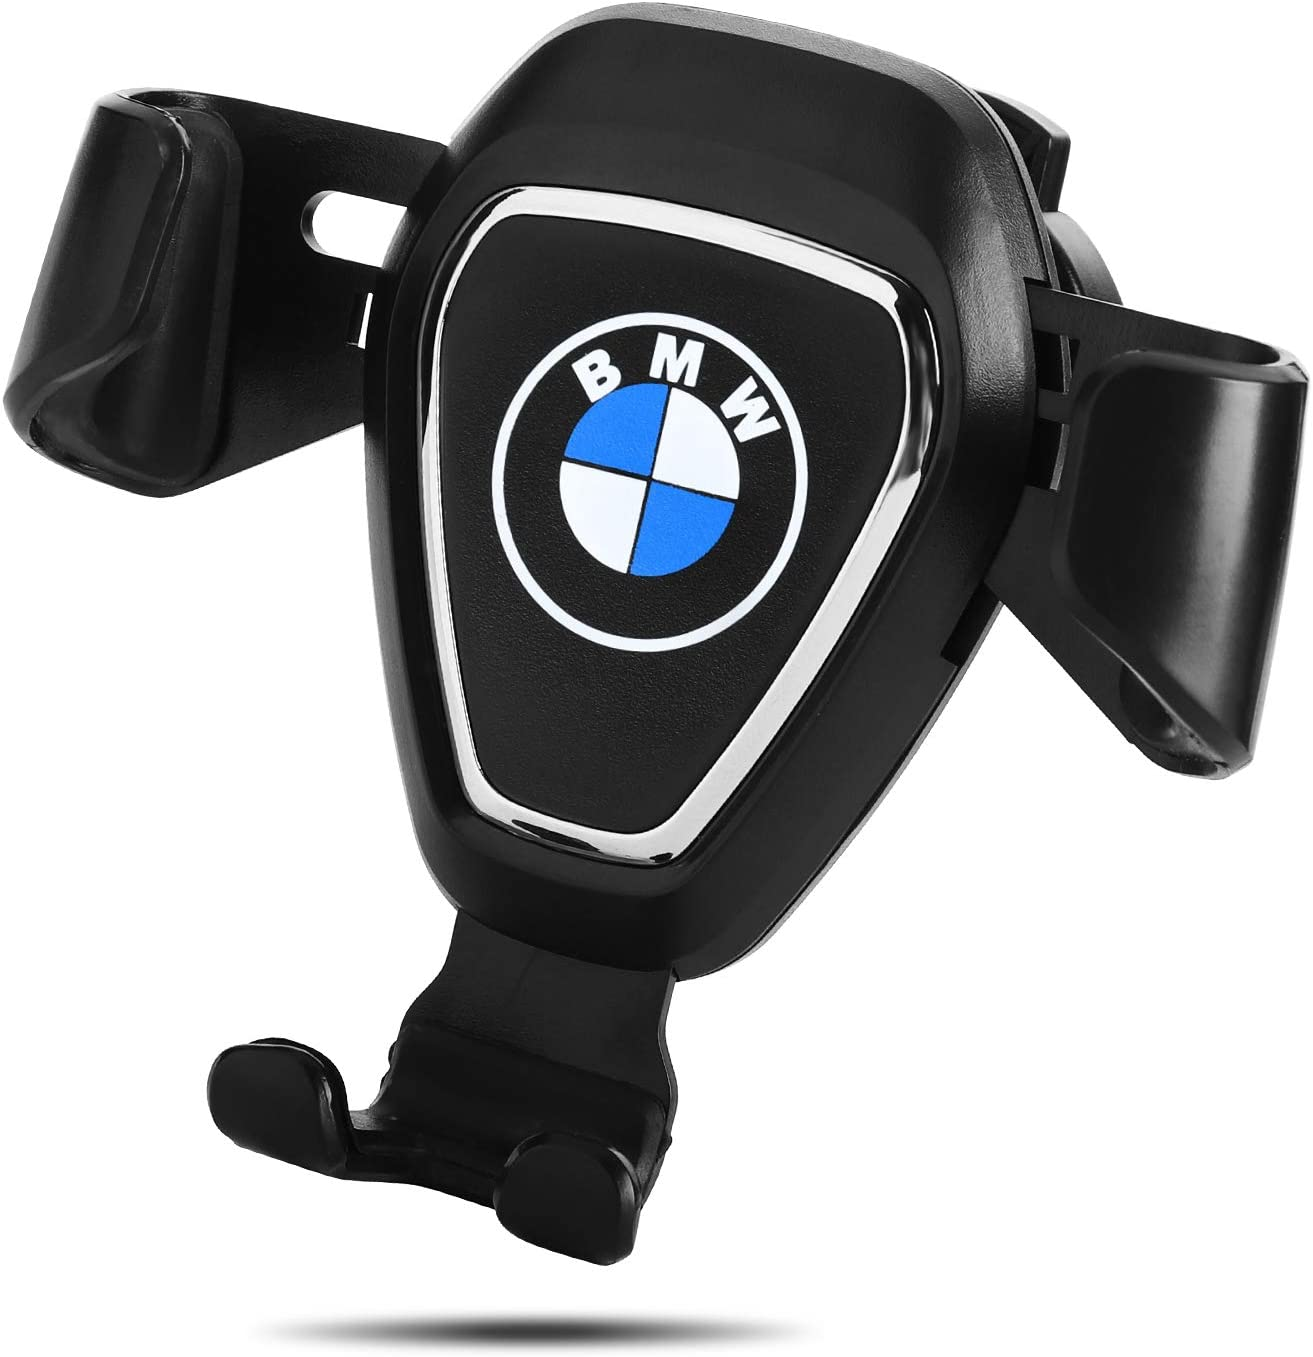 Car Mount Phone Holder Automatic Locking Universal Air Vent GPS Cell Phone Holder for BMW